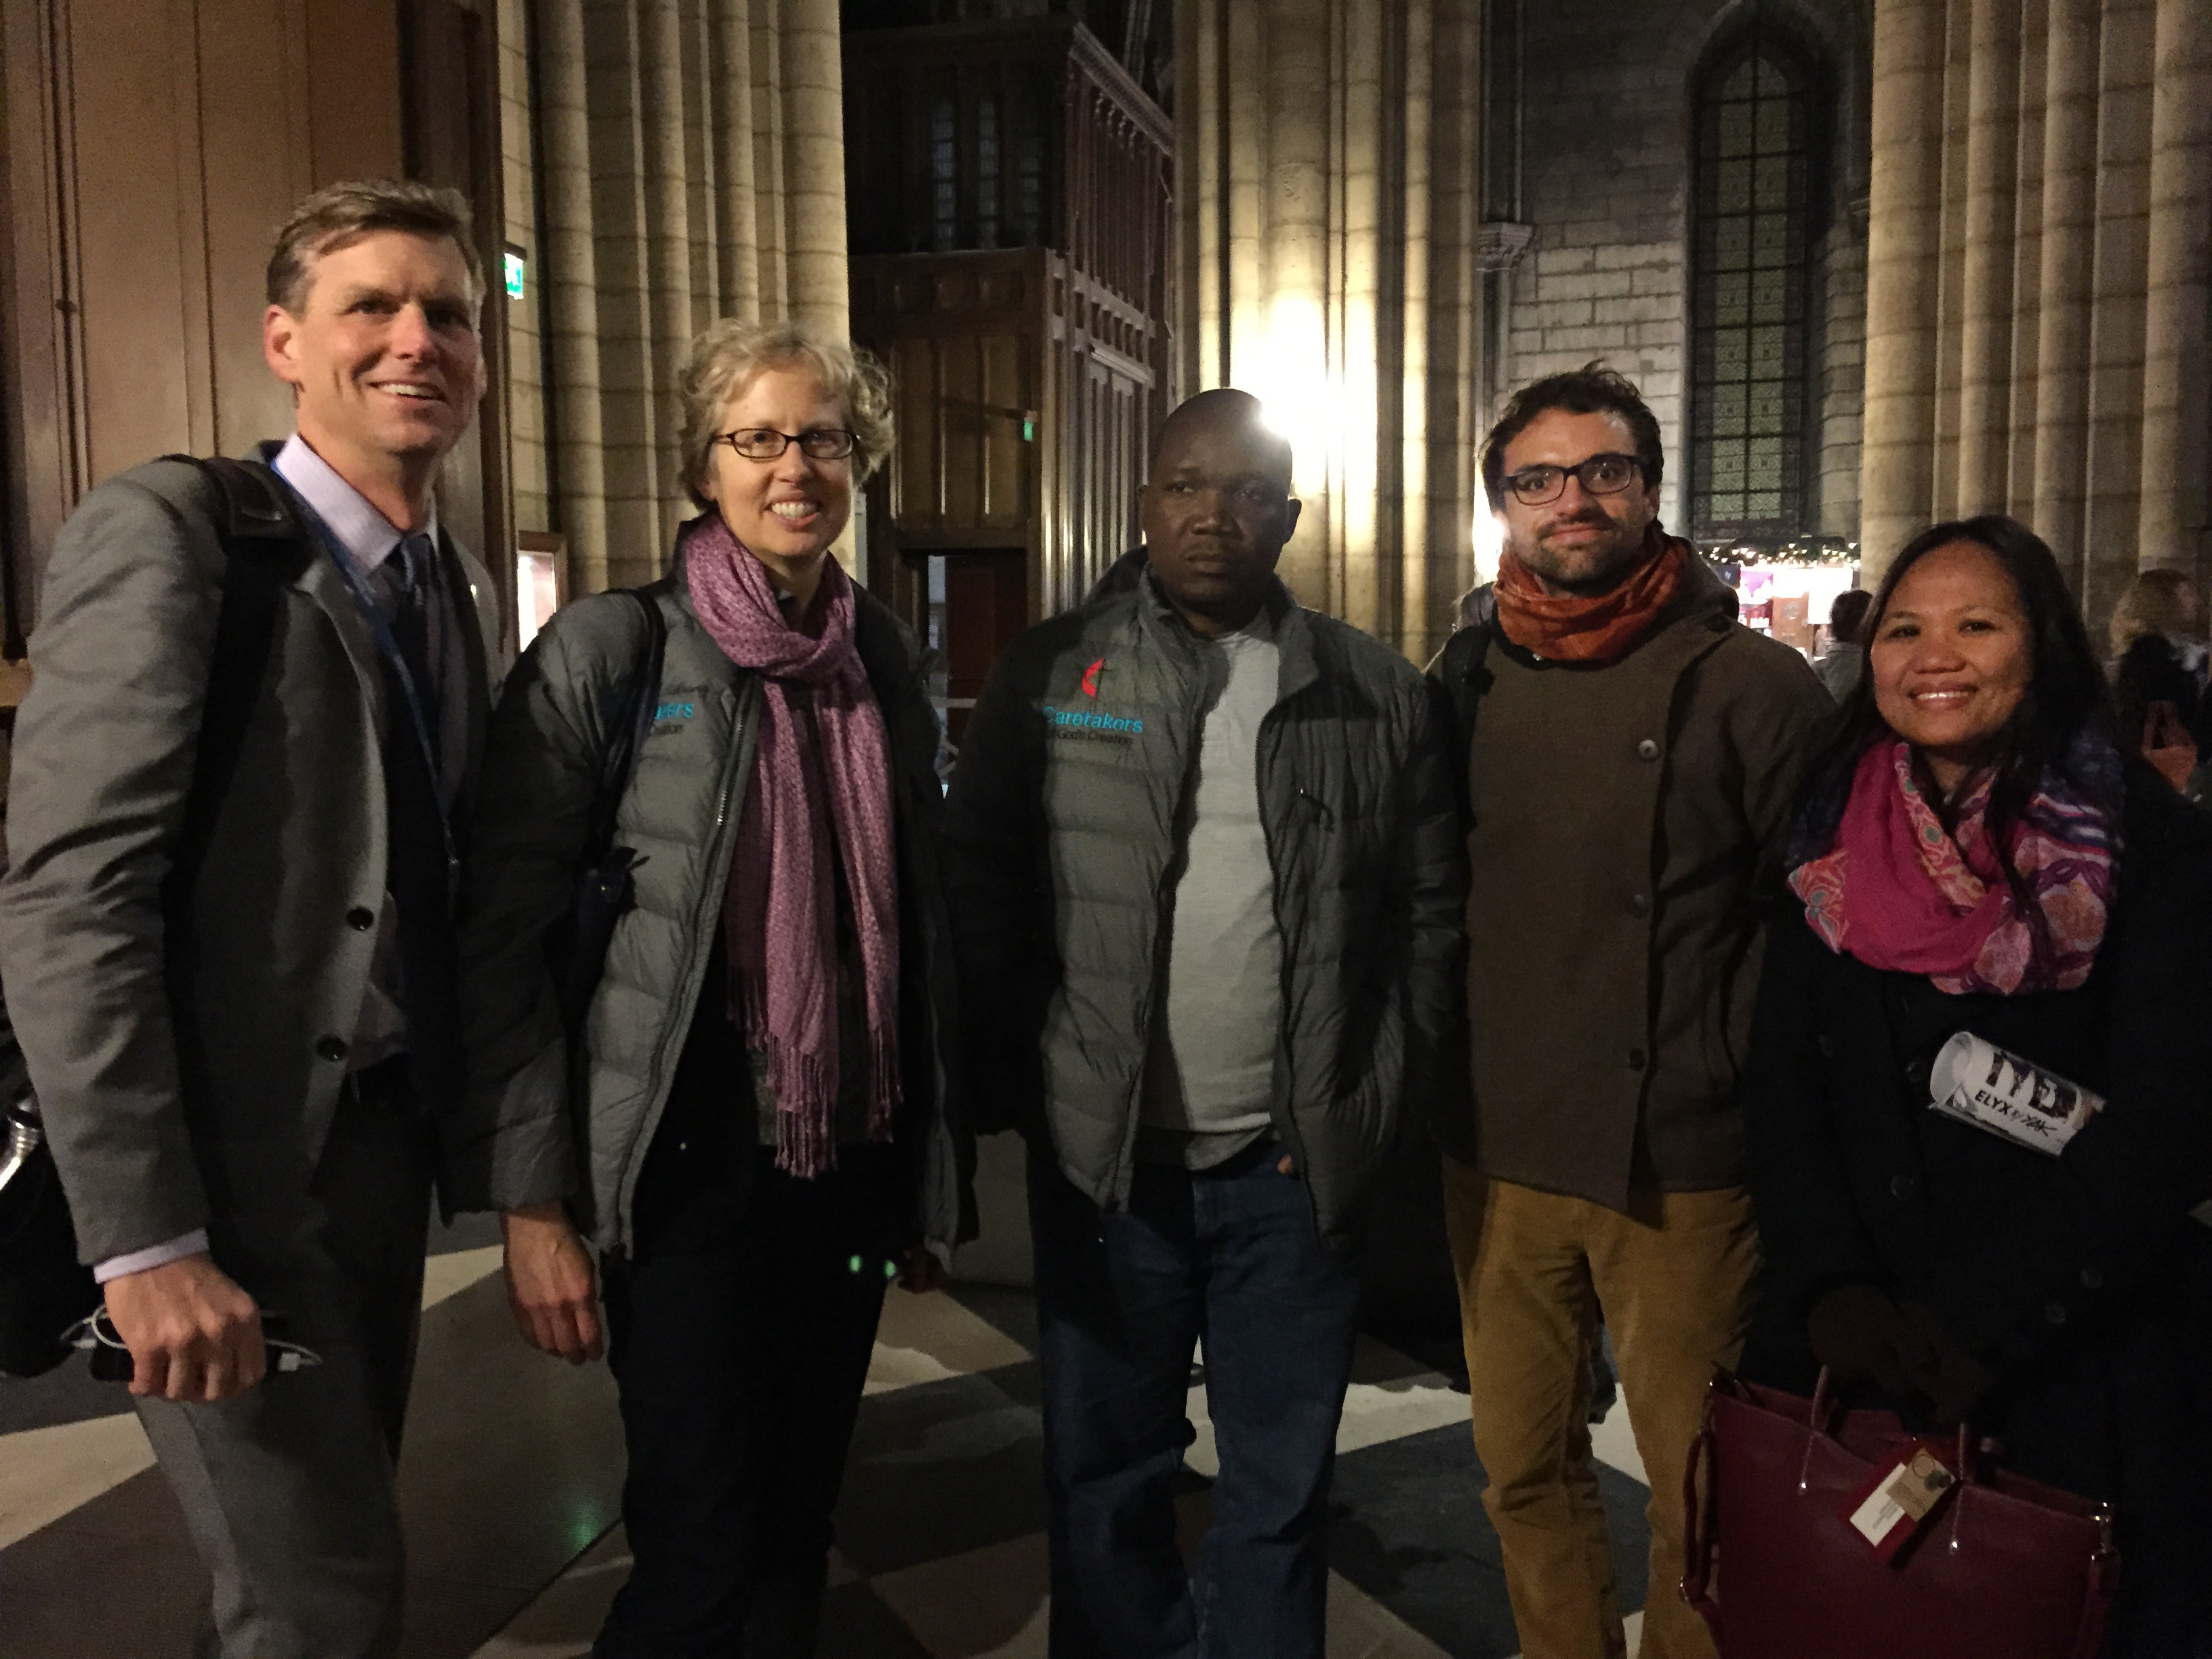 From left, John Hill and Susan Mullen, U.S., Jefferson Knight, Liberia; Daniel Obergfell, Germany, and Jennifer Ferariza Meneses, Philippines, at the Cathedral of Notre Dame in Paris. They were part of the teams from the United Methodist boards of Global Ministries and Church and Society at the U.N. climate summit. Photo courtesy of the Board of Church and Society